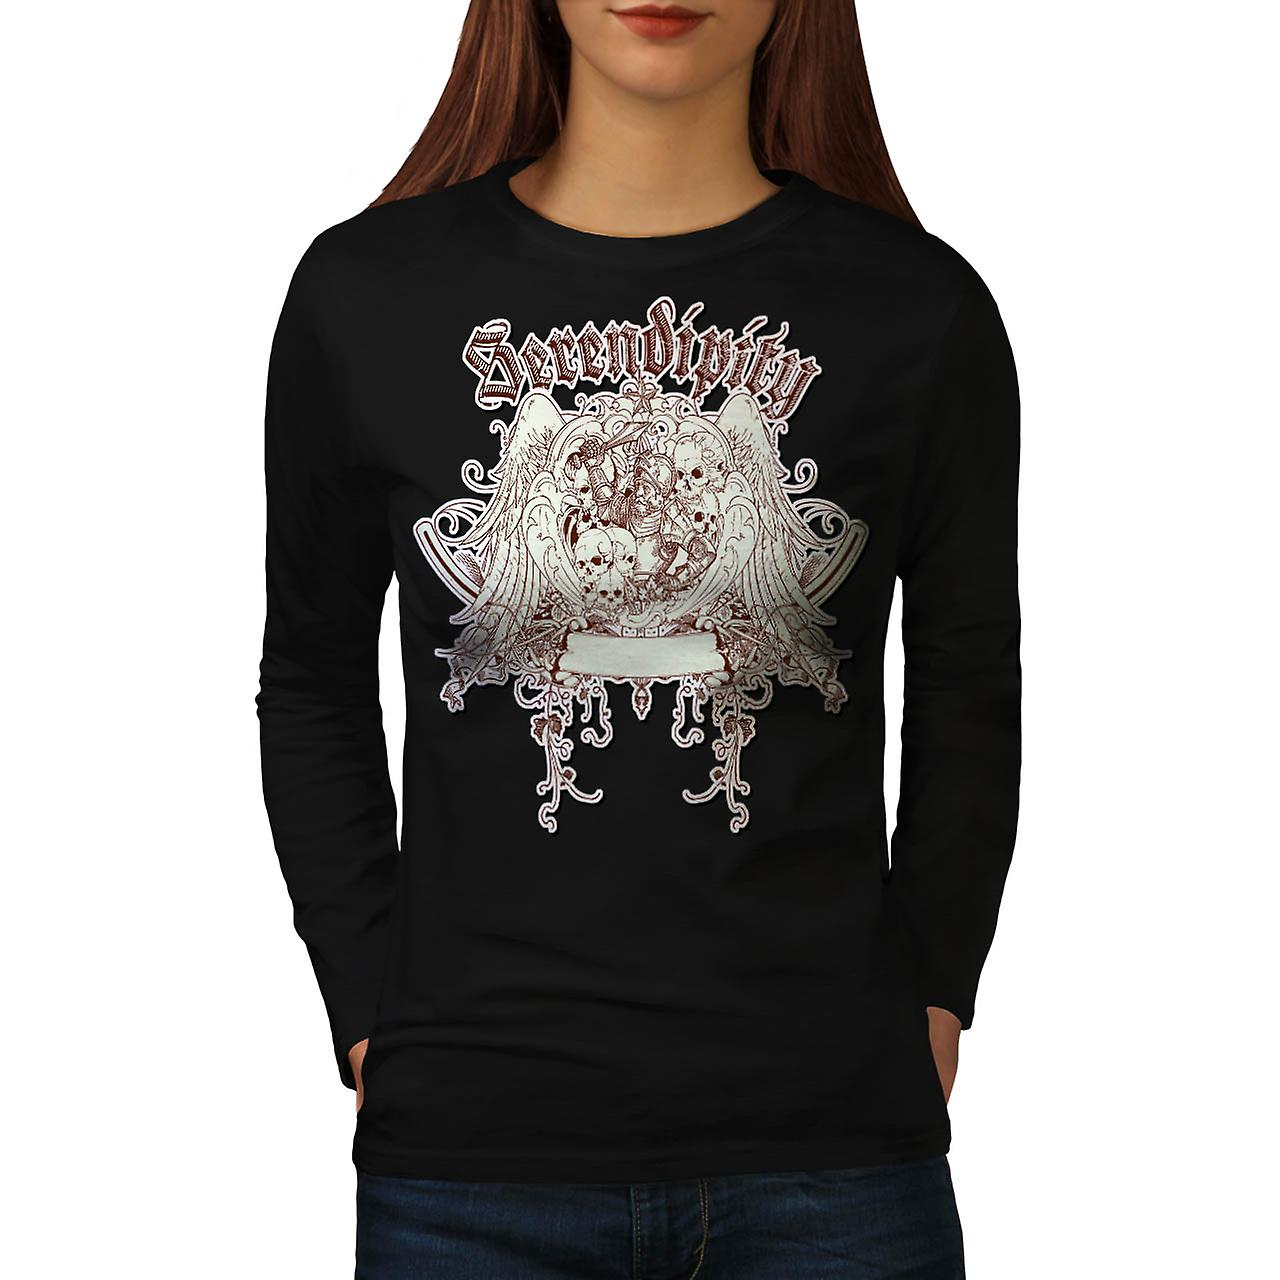 Serendipity Discover Grave Yard Women Black Long Sleeve T-shirt | Wellcoda